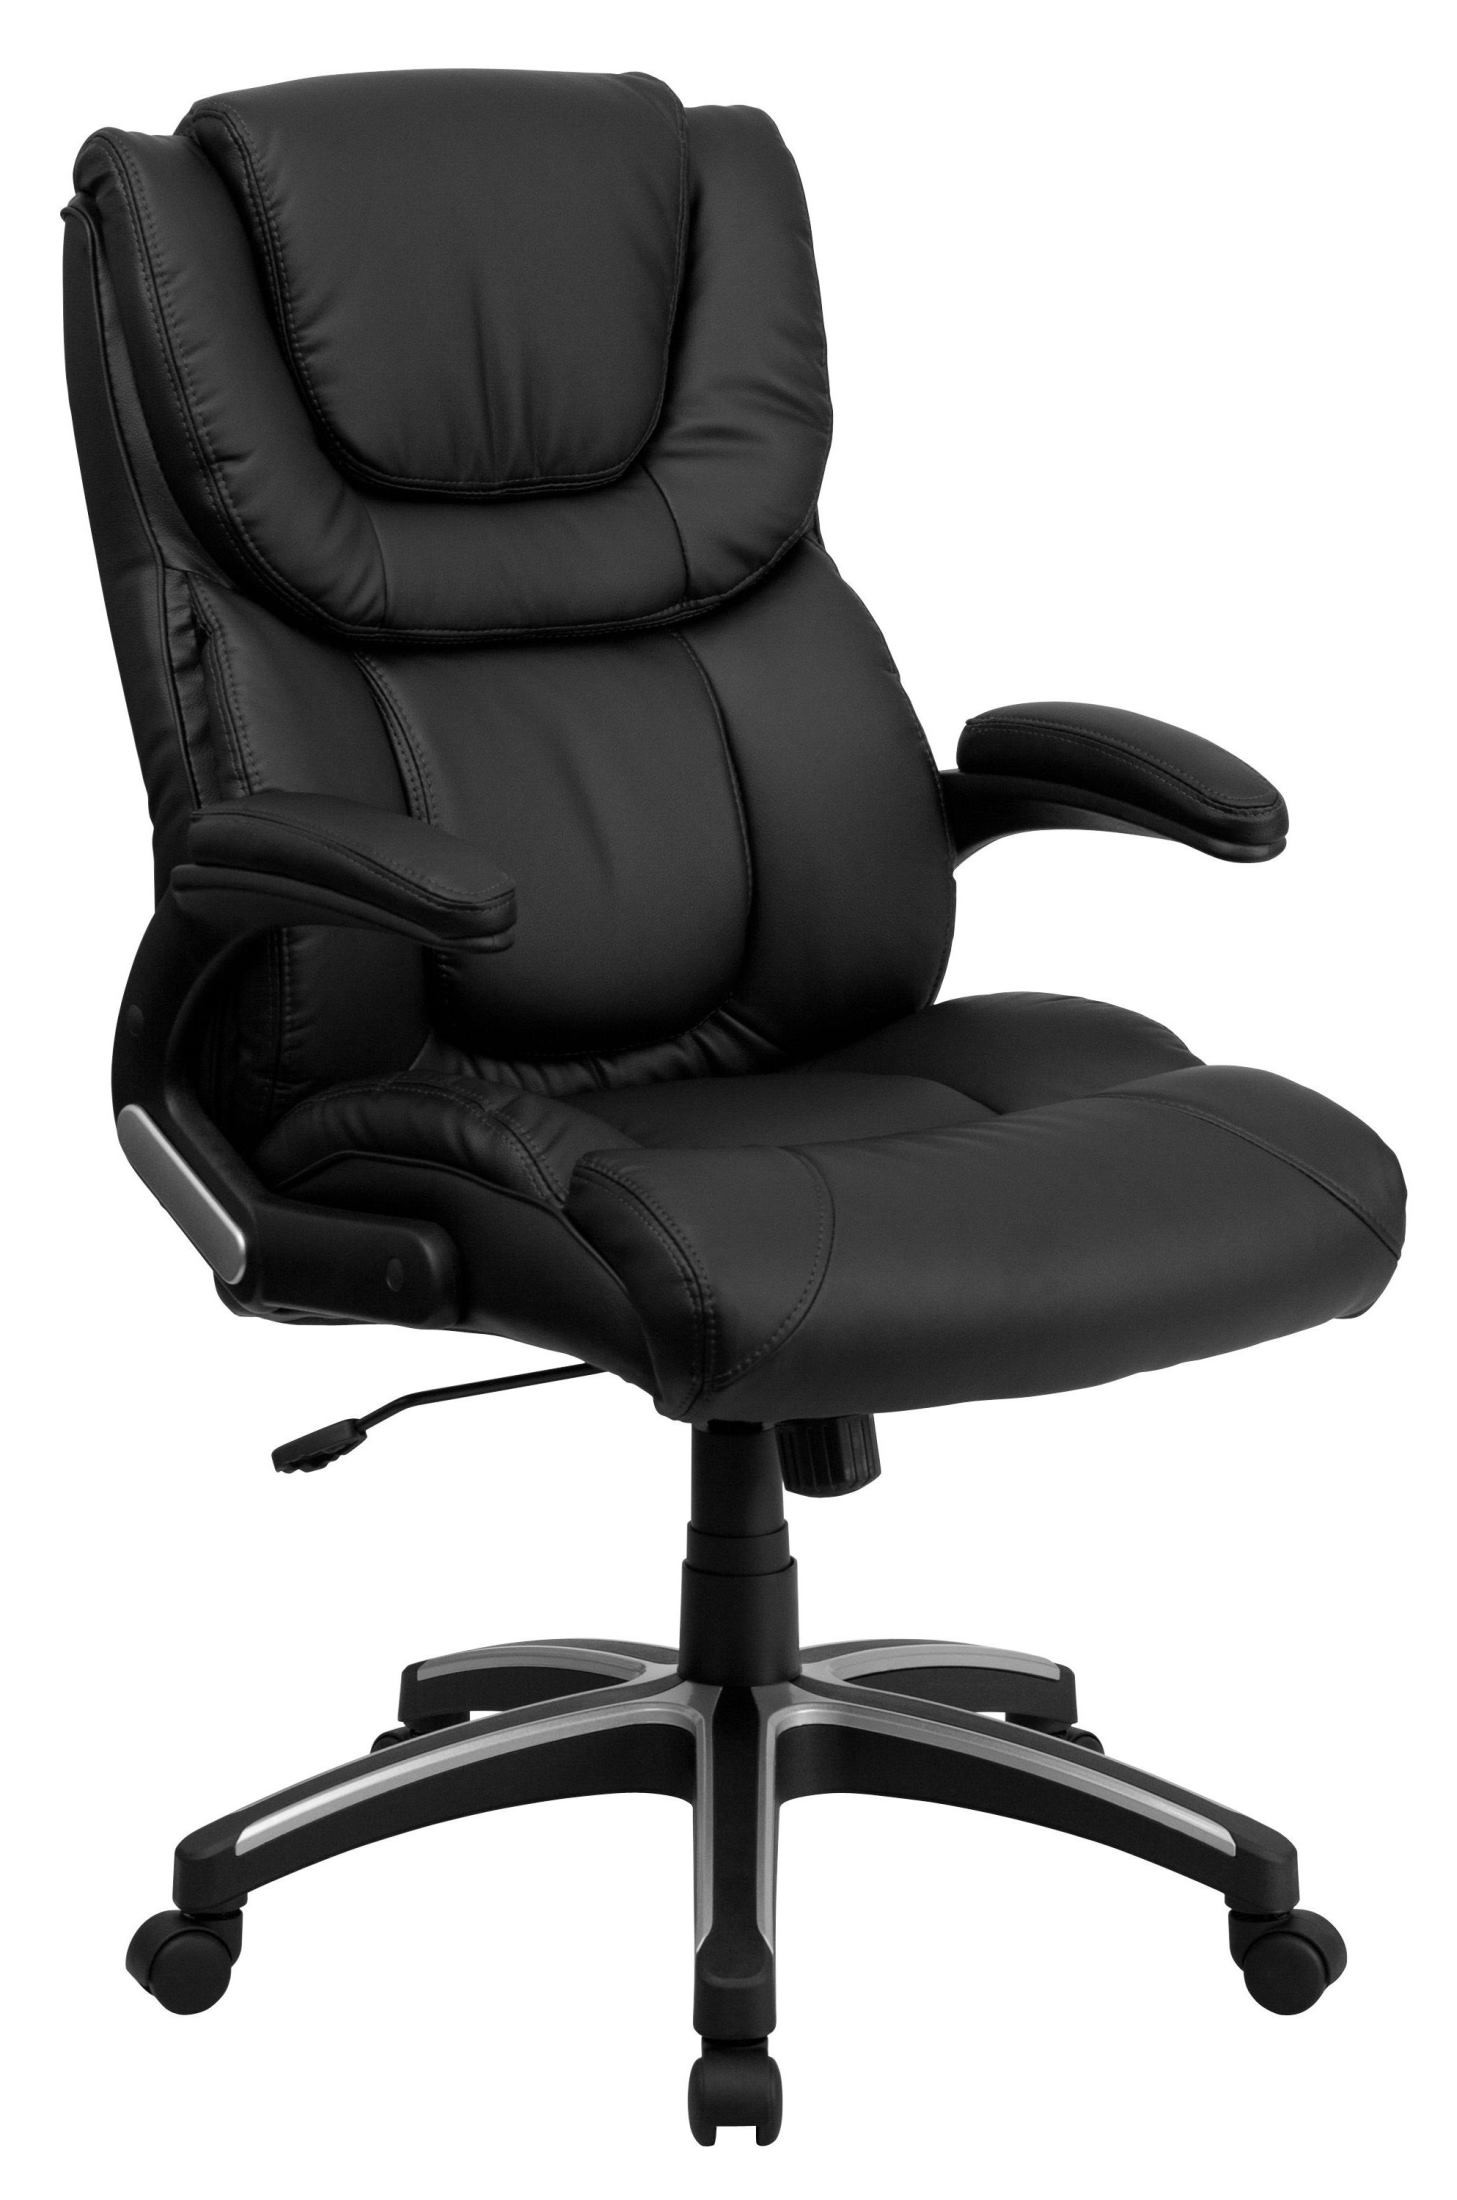 coleman lumbar quattro chair best chairs swivel glider recliner 1000523 high back black executive office from